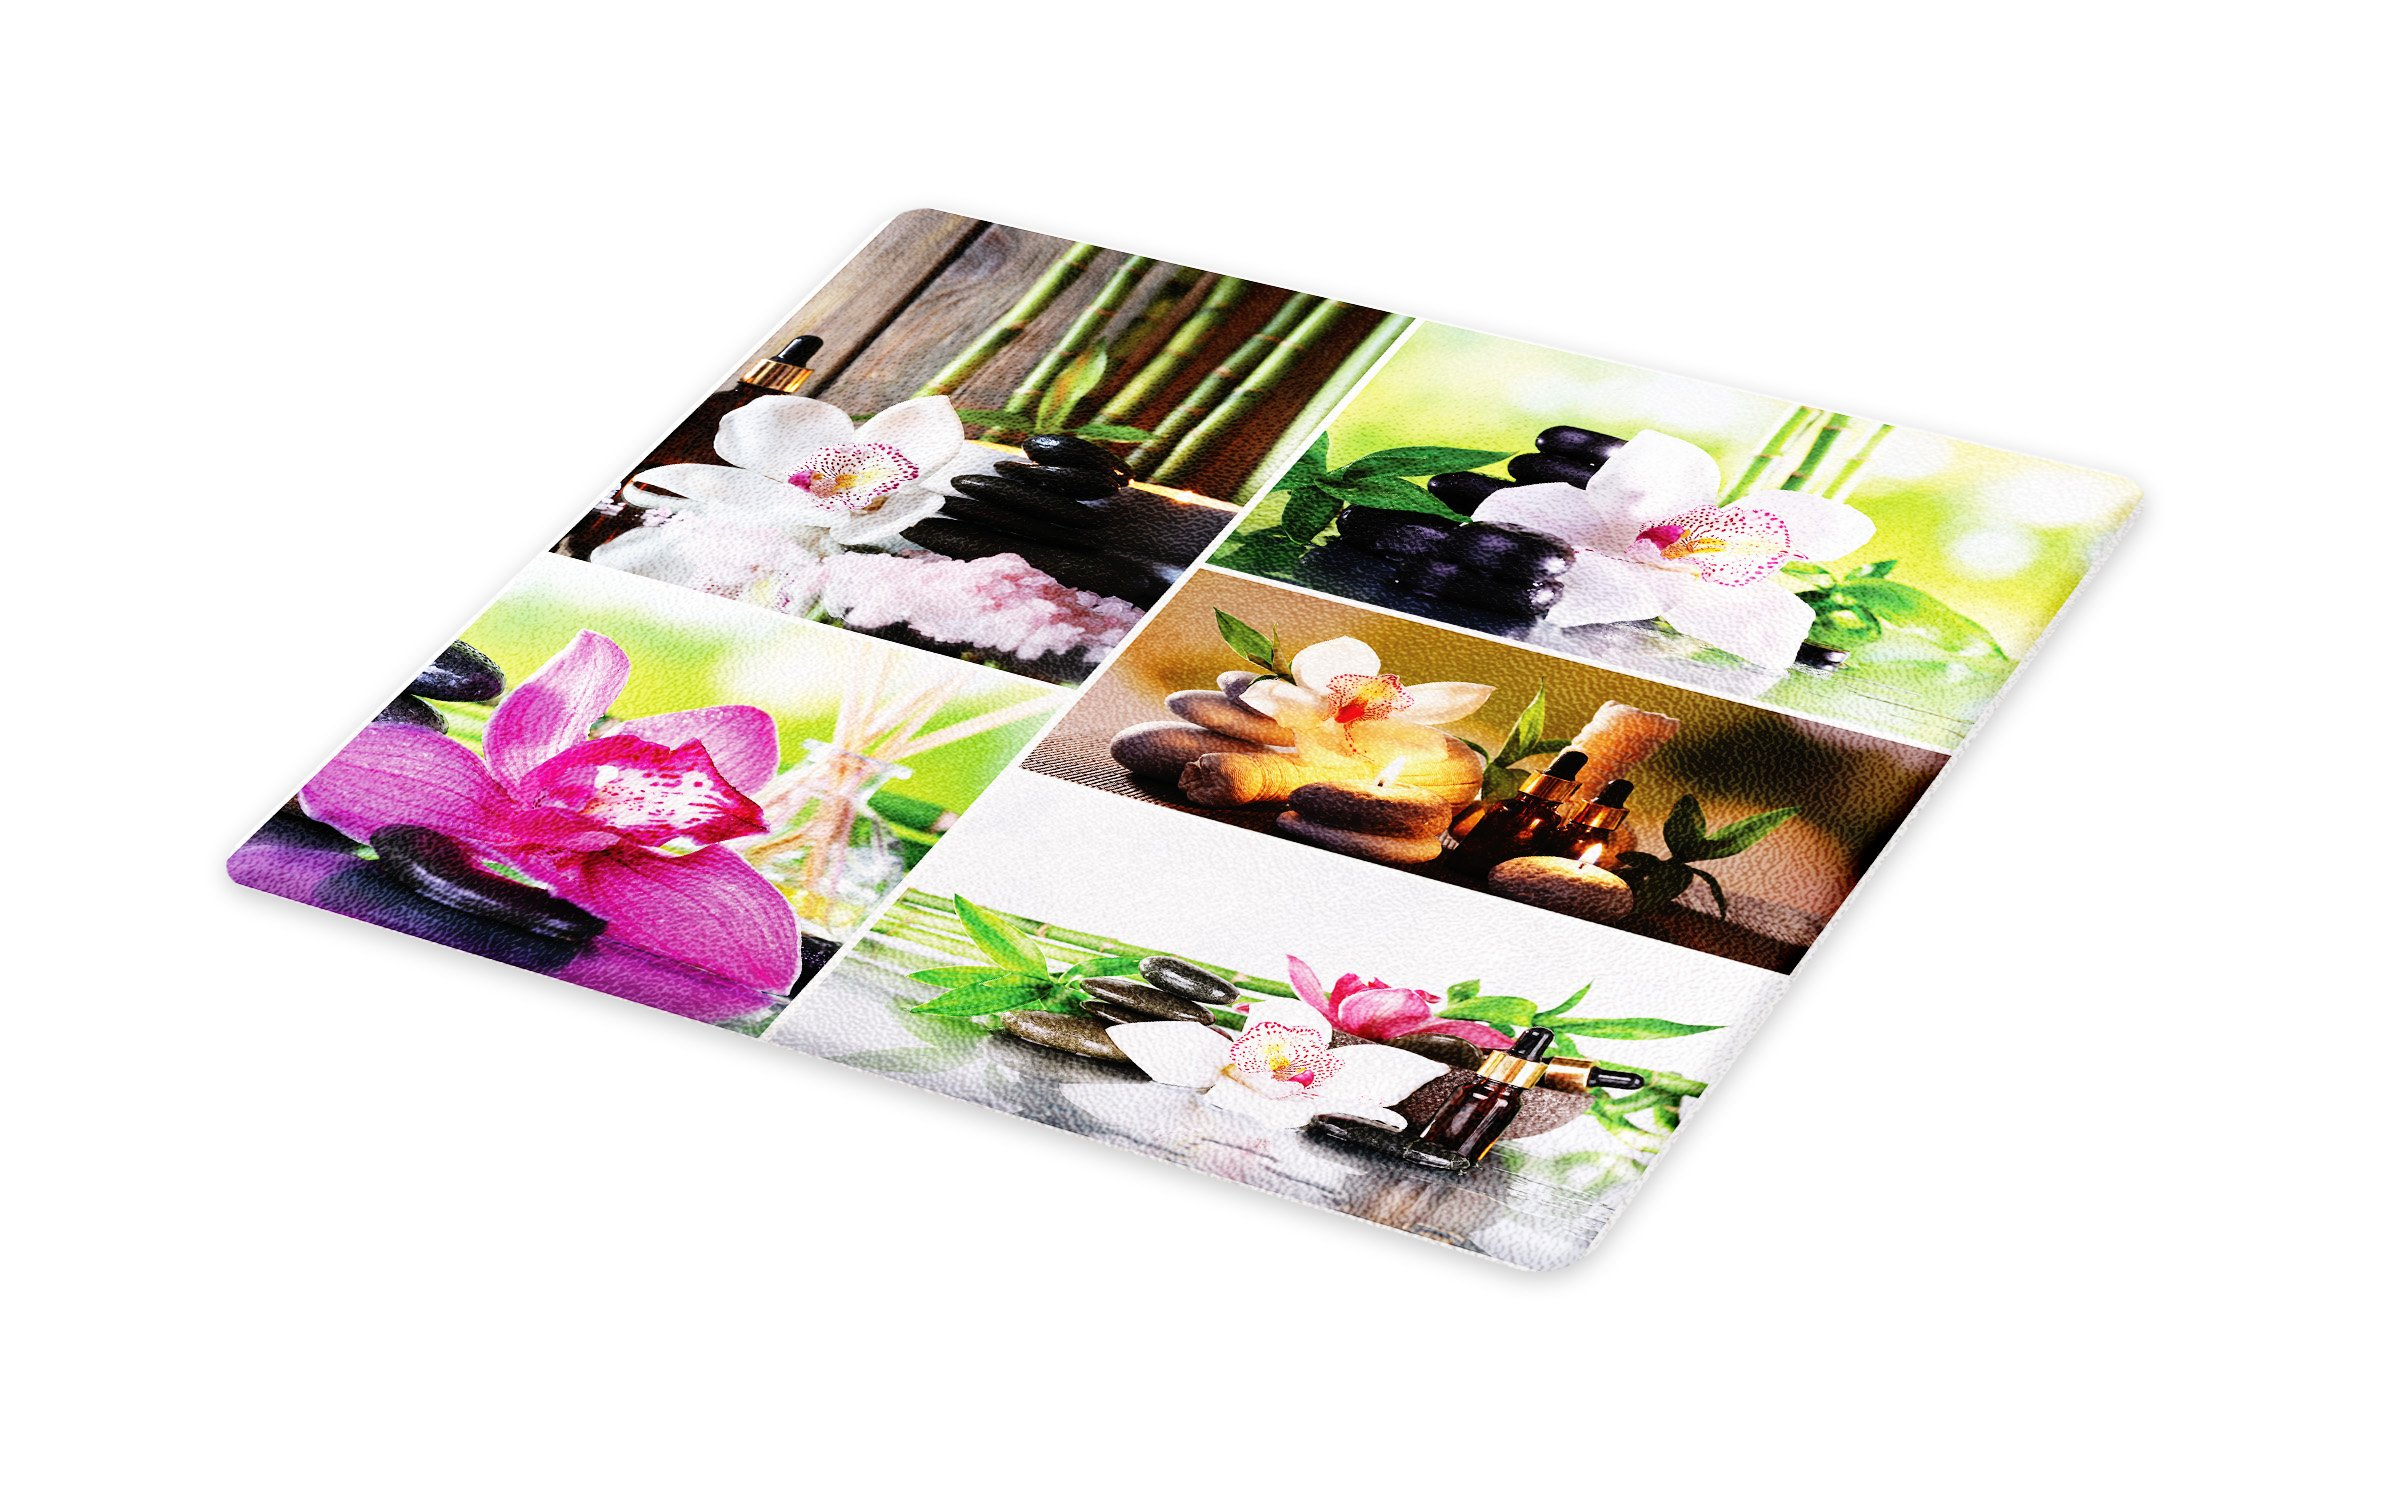 Lunarable Spa Cutting Board, Spa Day Collage with Orchids Stone Pebbles Natural Herbal Oils Body and Mind Treatment, Decorative Tempered Glass Cutting and Serving Board, Small Size, Multicolor